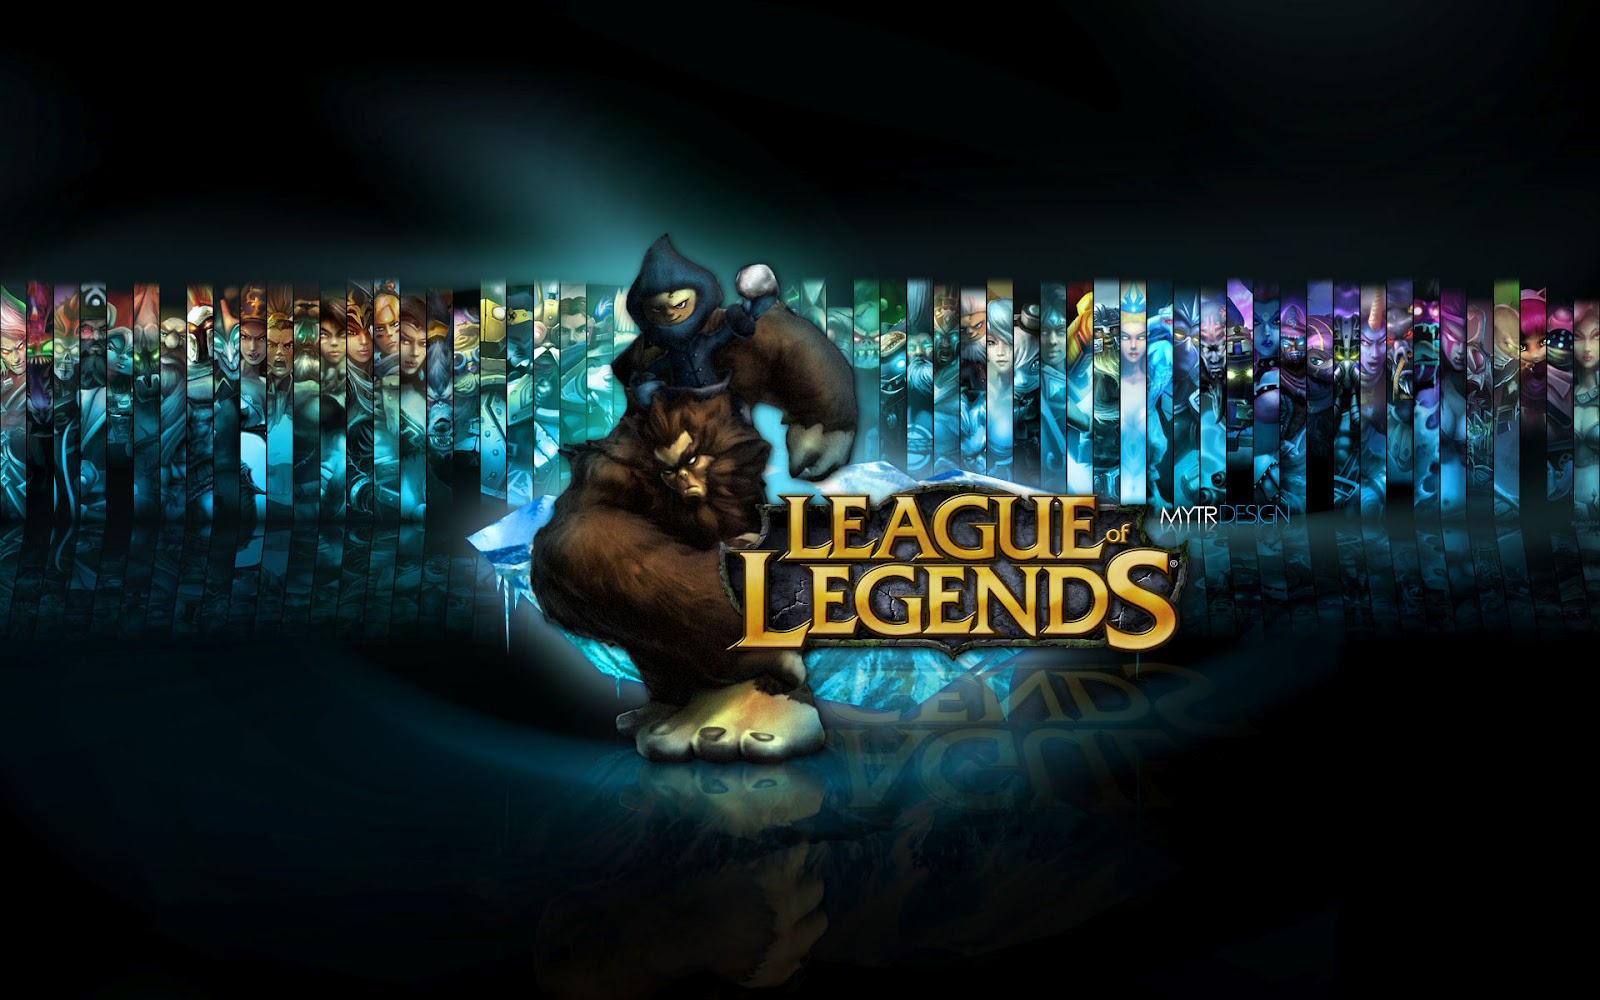 http://3.bp.blogspot.com/-8BNDfedPUlI/UF1PaE_vhYI/AAAAAAAAAWo/X6AE10IwGGQ/s1600/League-of-Legends-Wallpaper-1920x1200.jpg